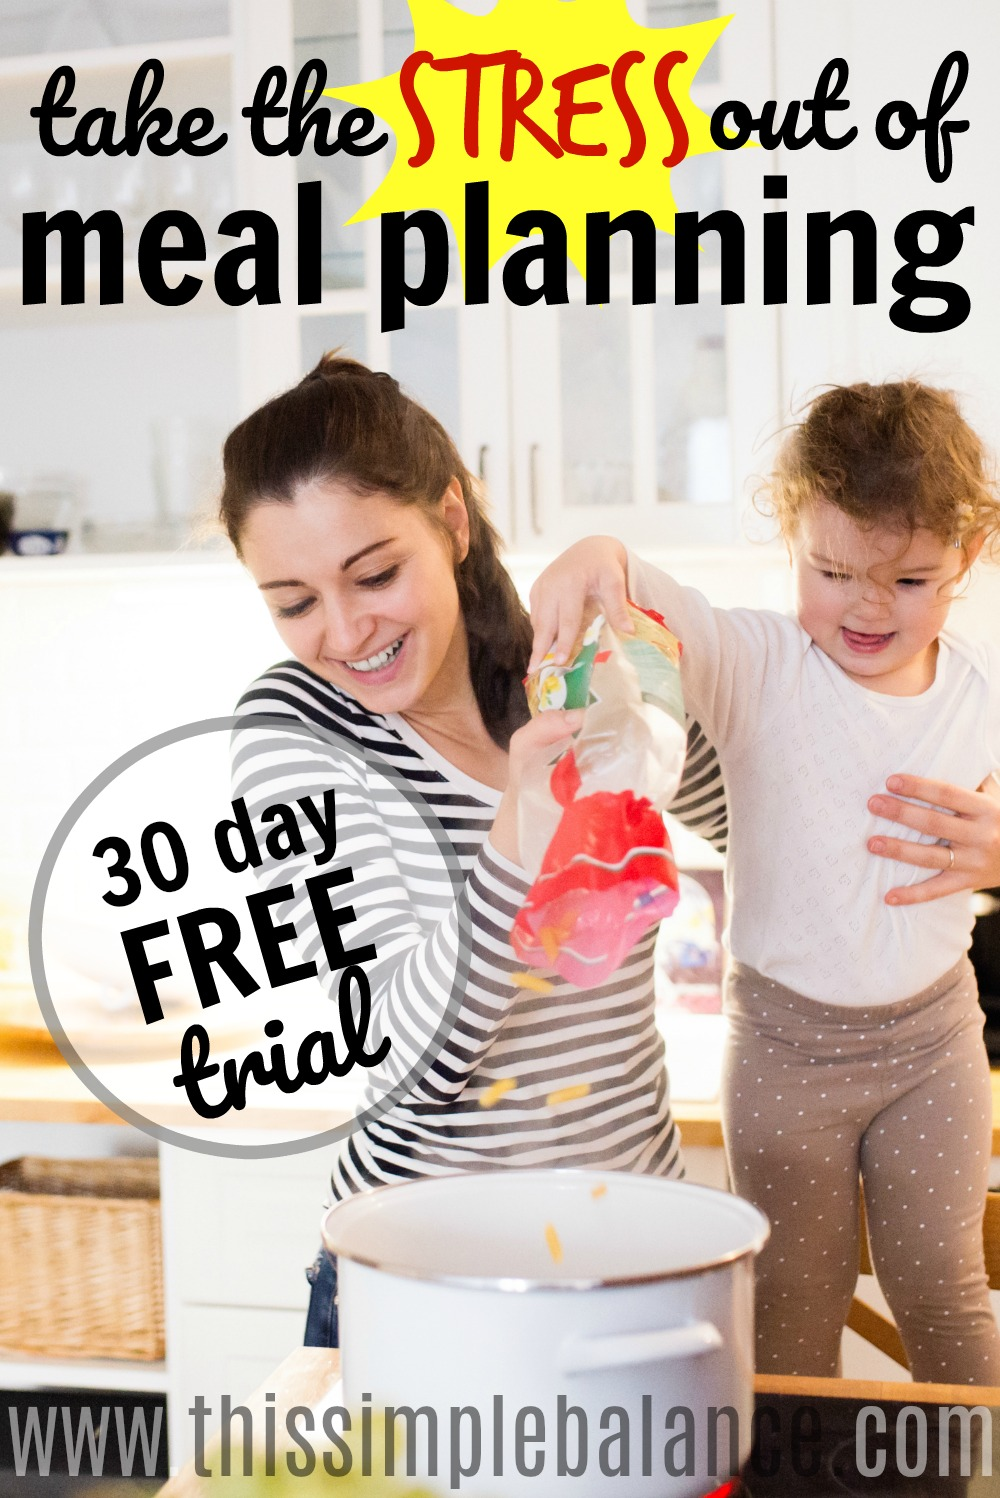 Do you dread meal planning? Does it take you forever to put together your weekly meal plan and shopping list? Check out this meal planning tool that will make it so simple to plan your meals every single week!